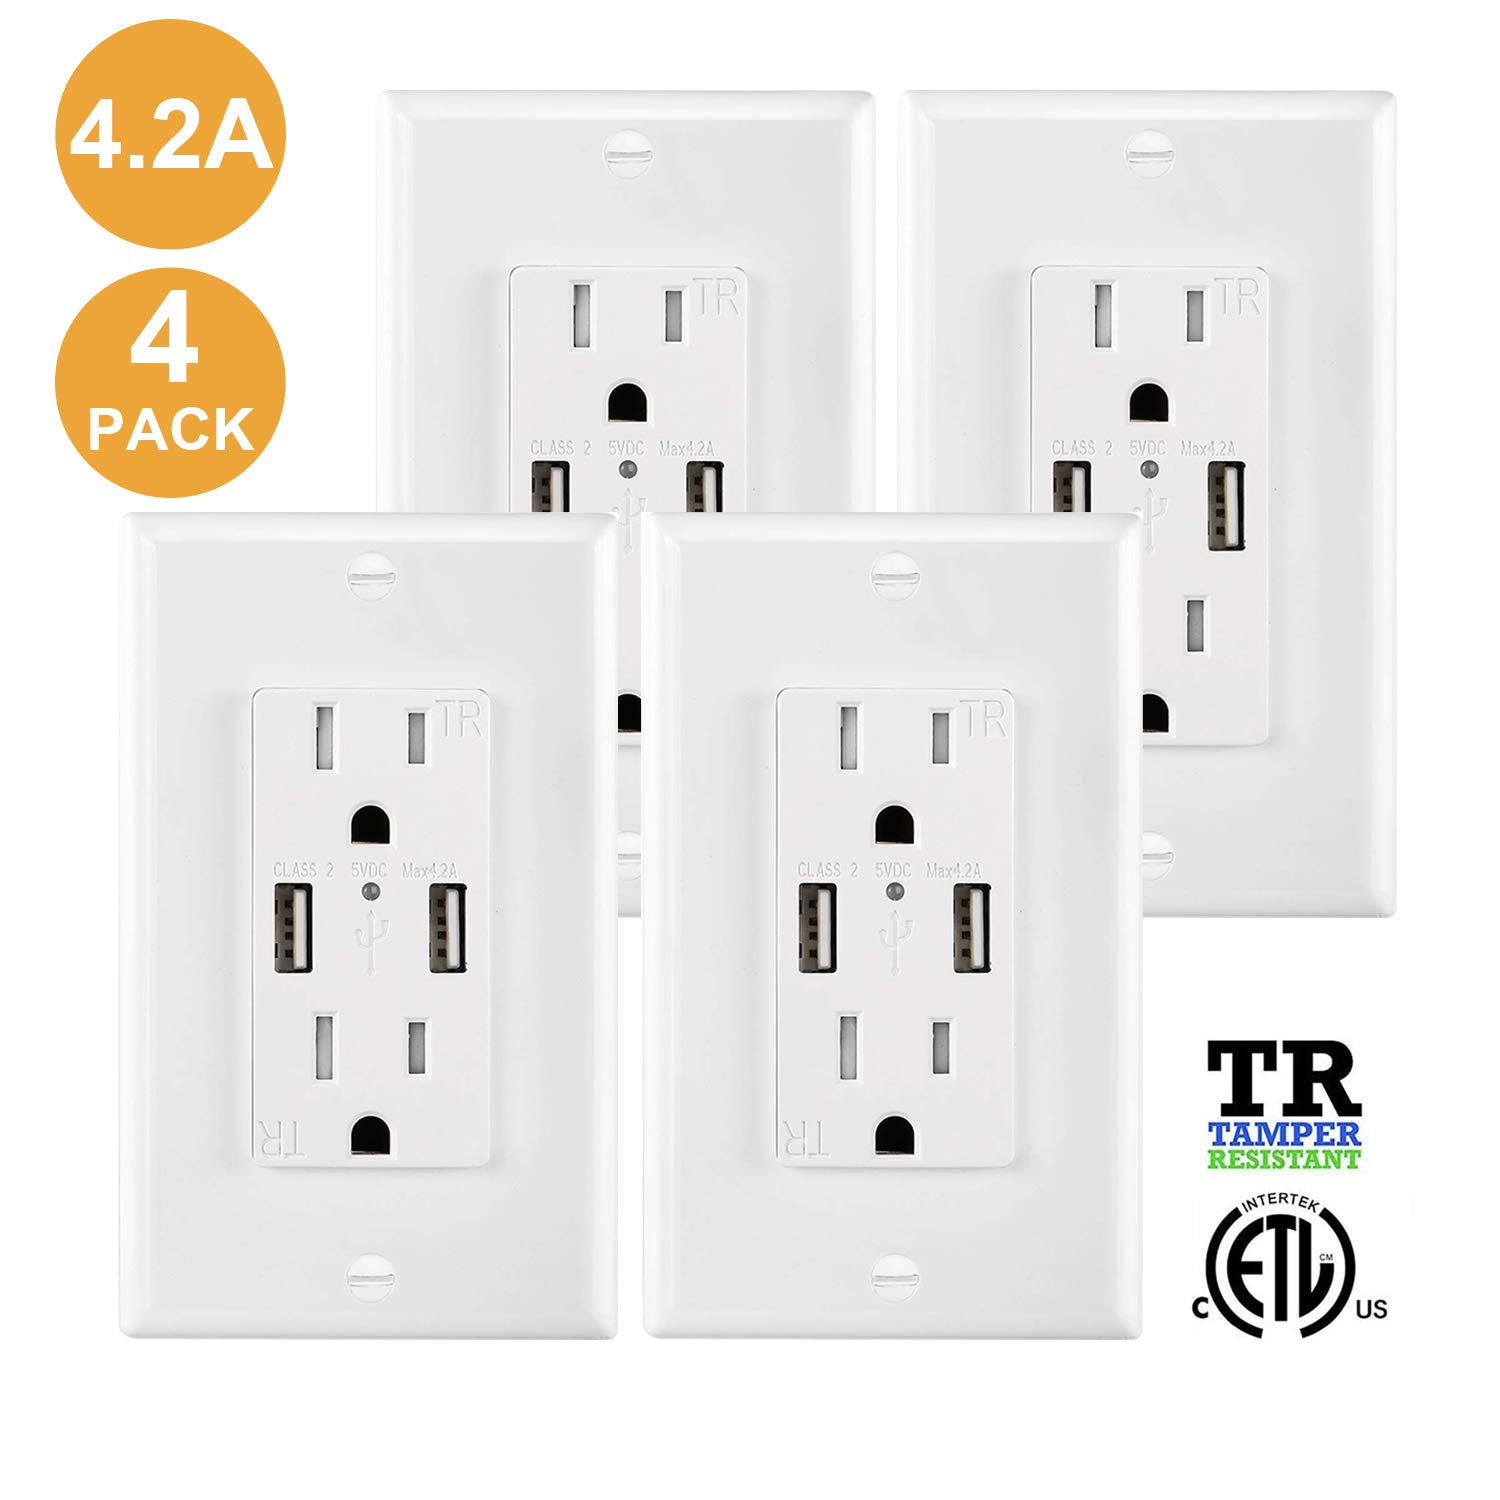 USB Outlet Wall Charger Outlet 4 Pack, 4.2A High Speed Decora Outlet Receptacle with Dual USB Ports 15A 125V 60Hz Tamper Resistant & Free Wallplate, White